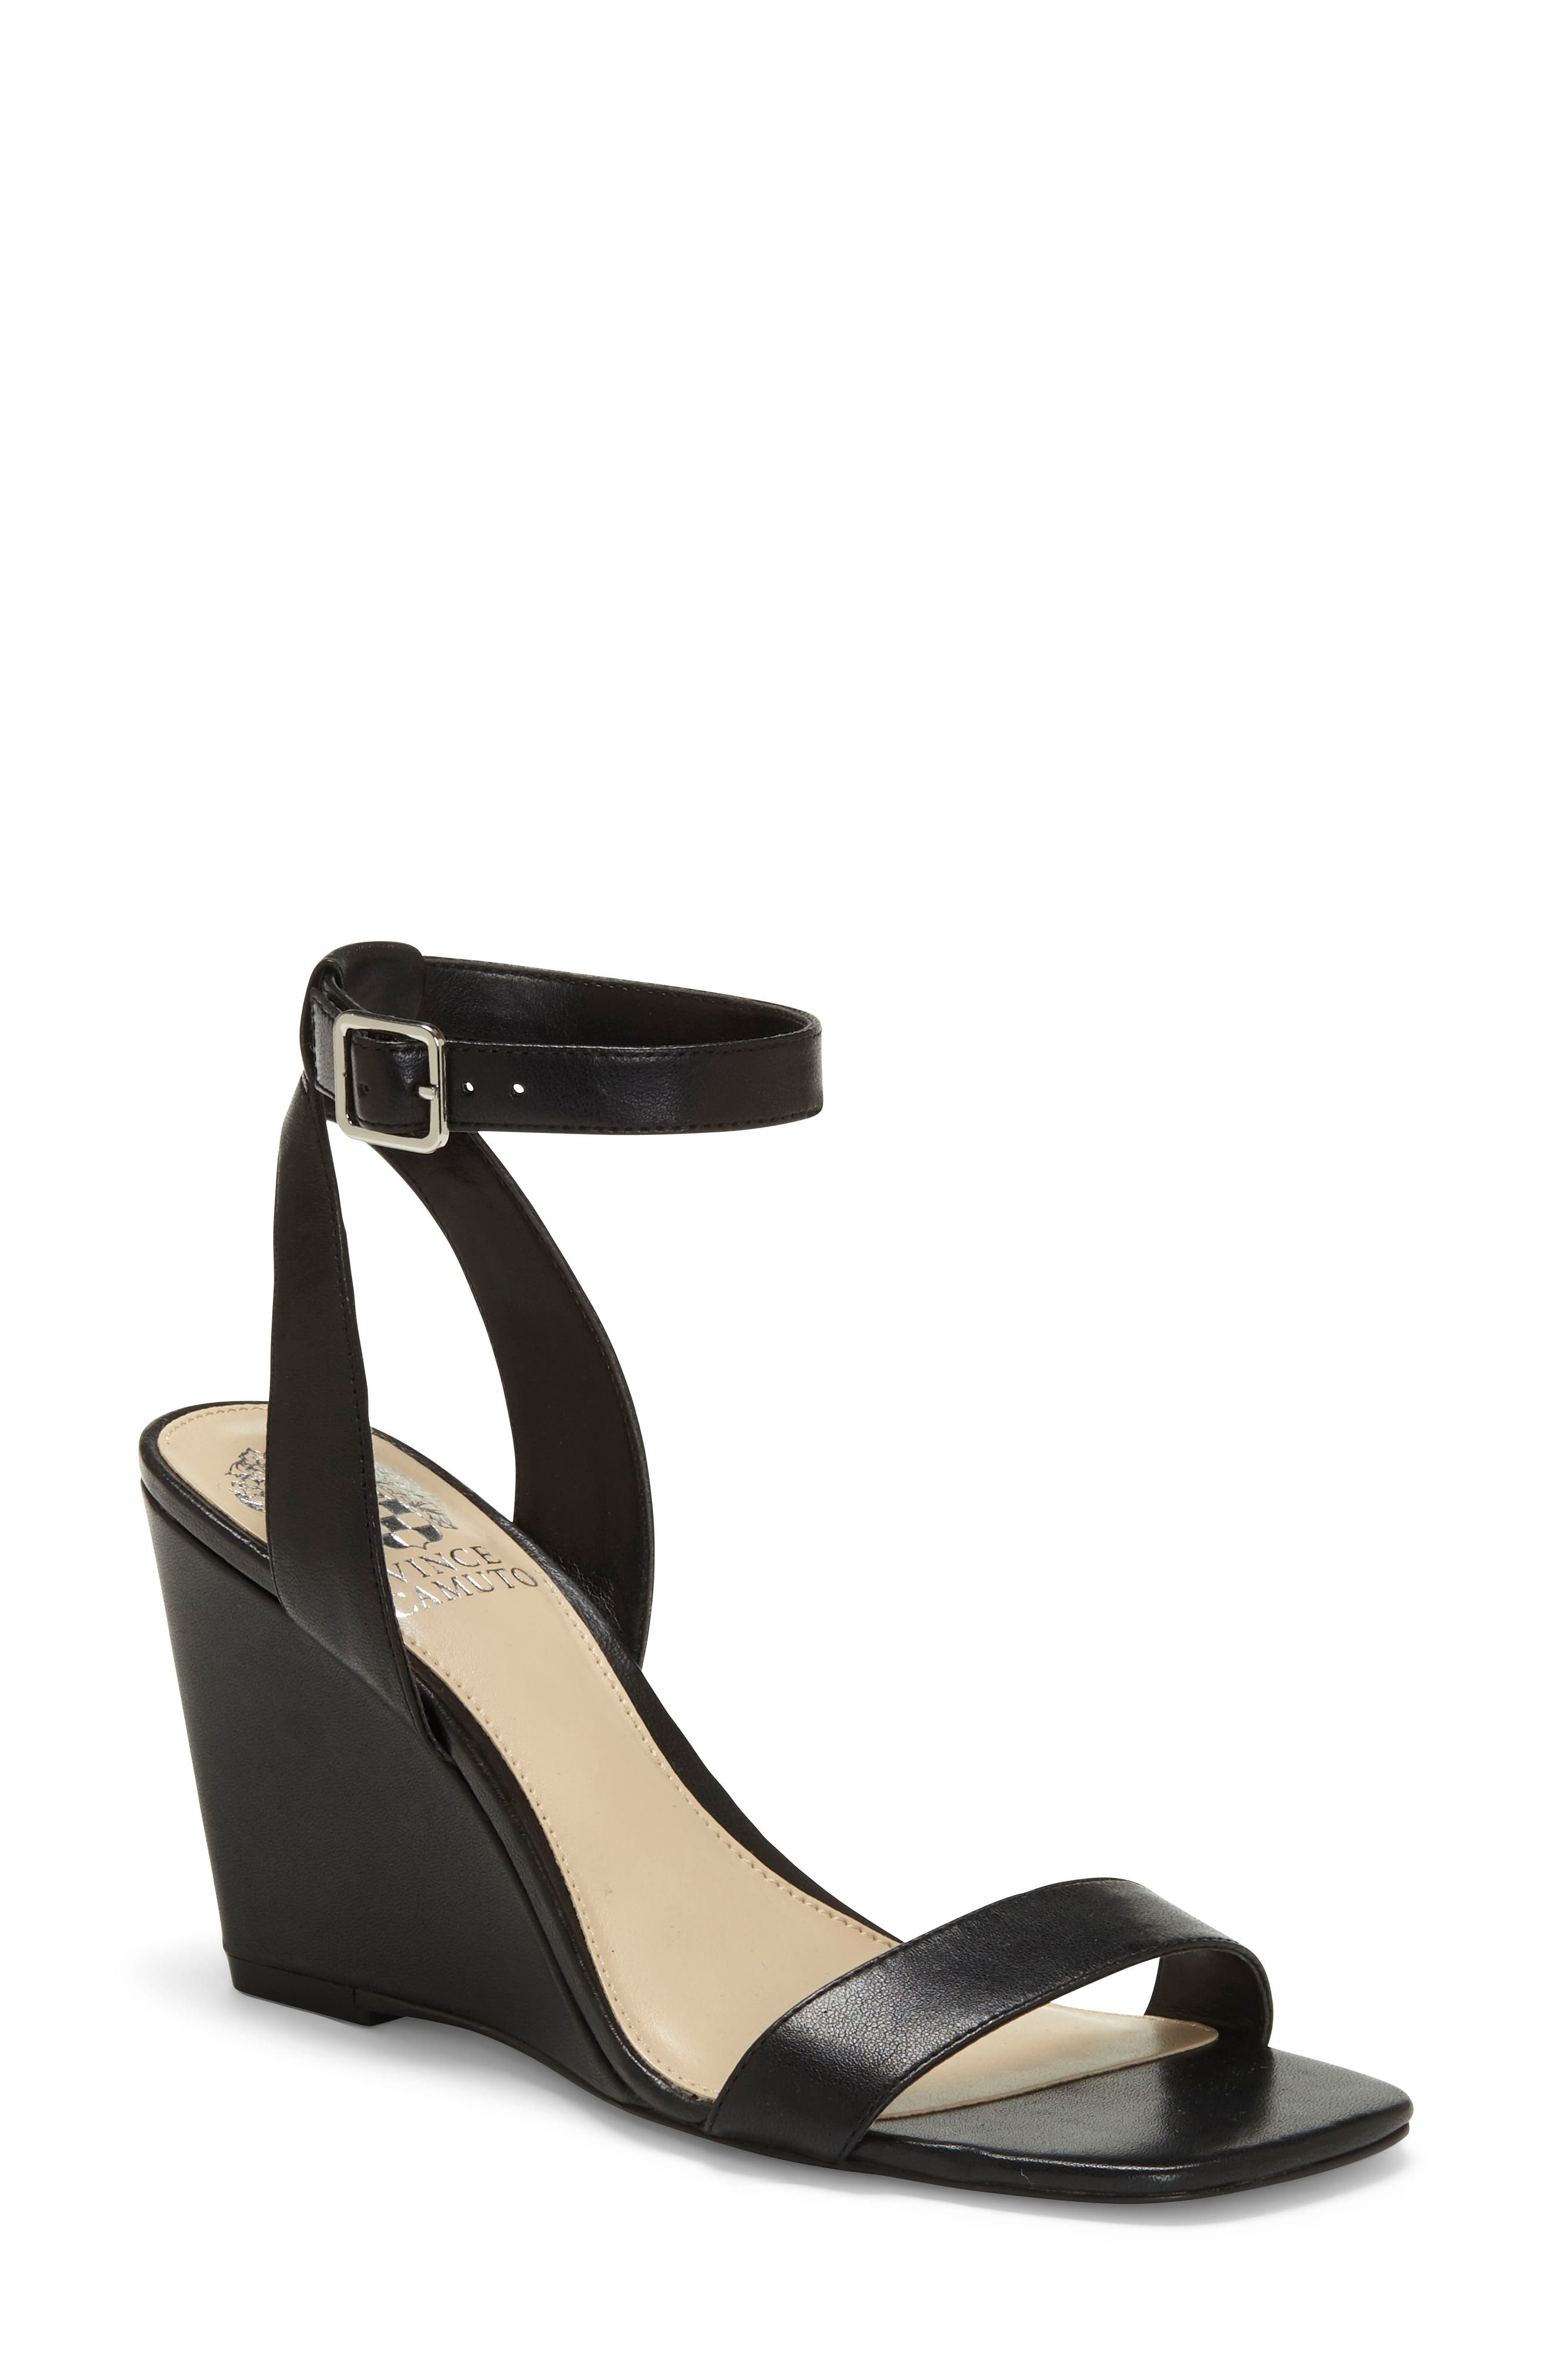 Women's Wedges Vince Camuto Shoes